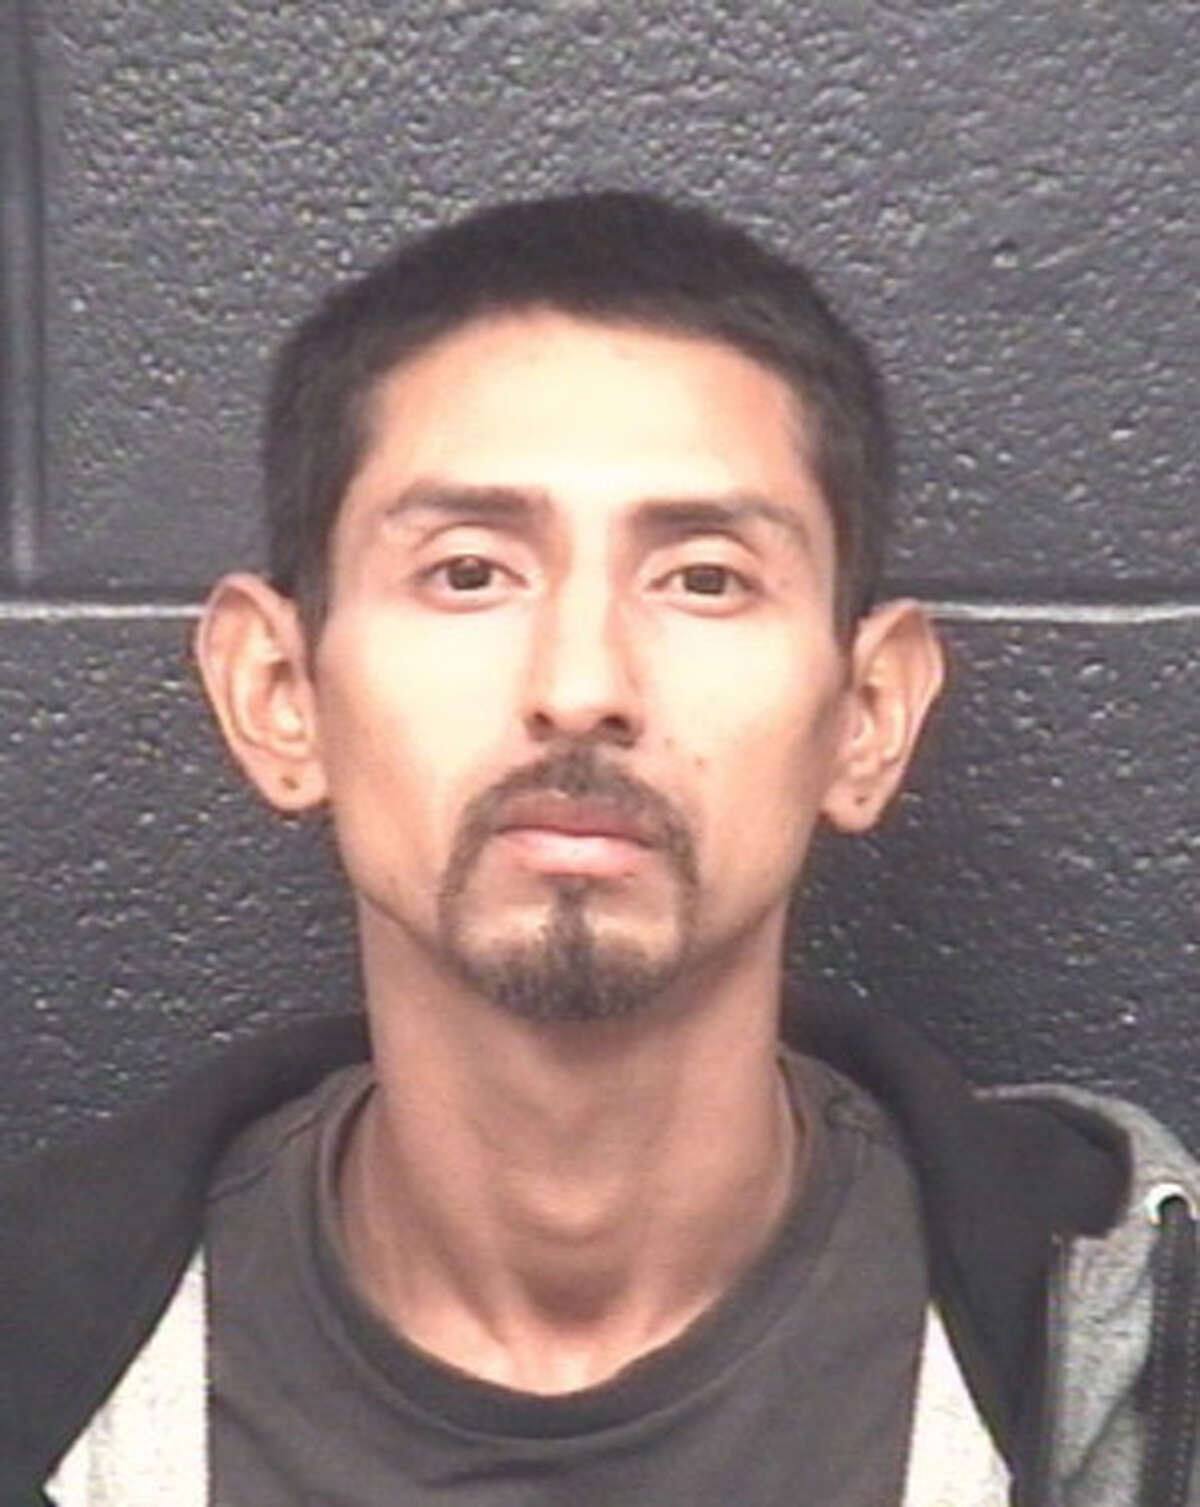 Luis Adrian Ramos, 29, is wanted for breaking into a home and stealing a firearm, according to Laredo police.